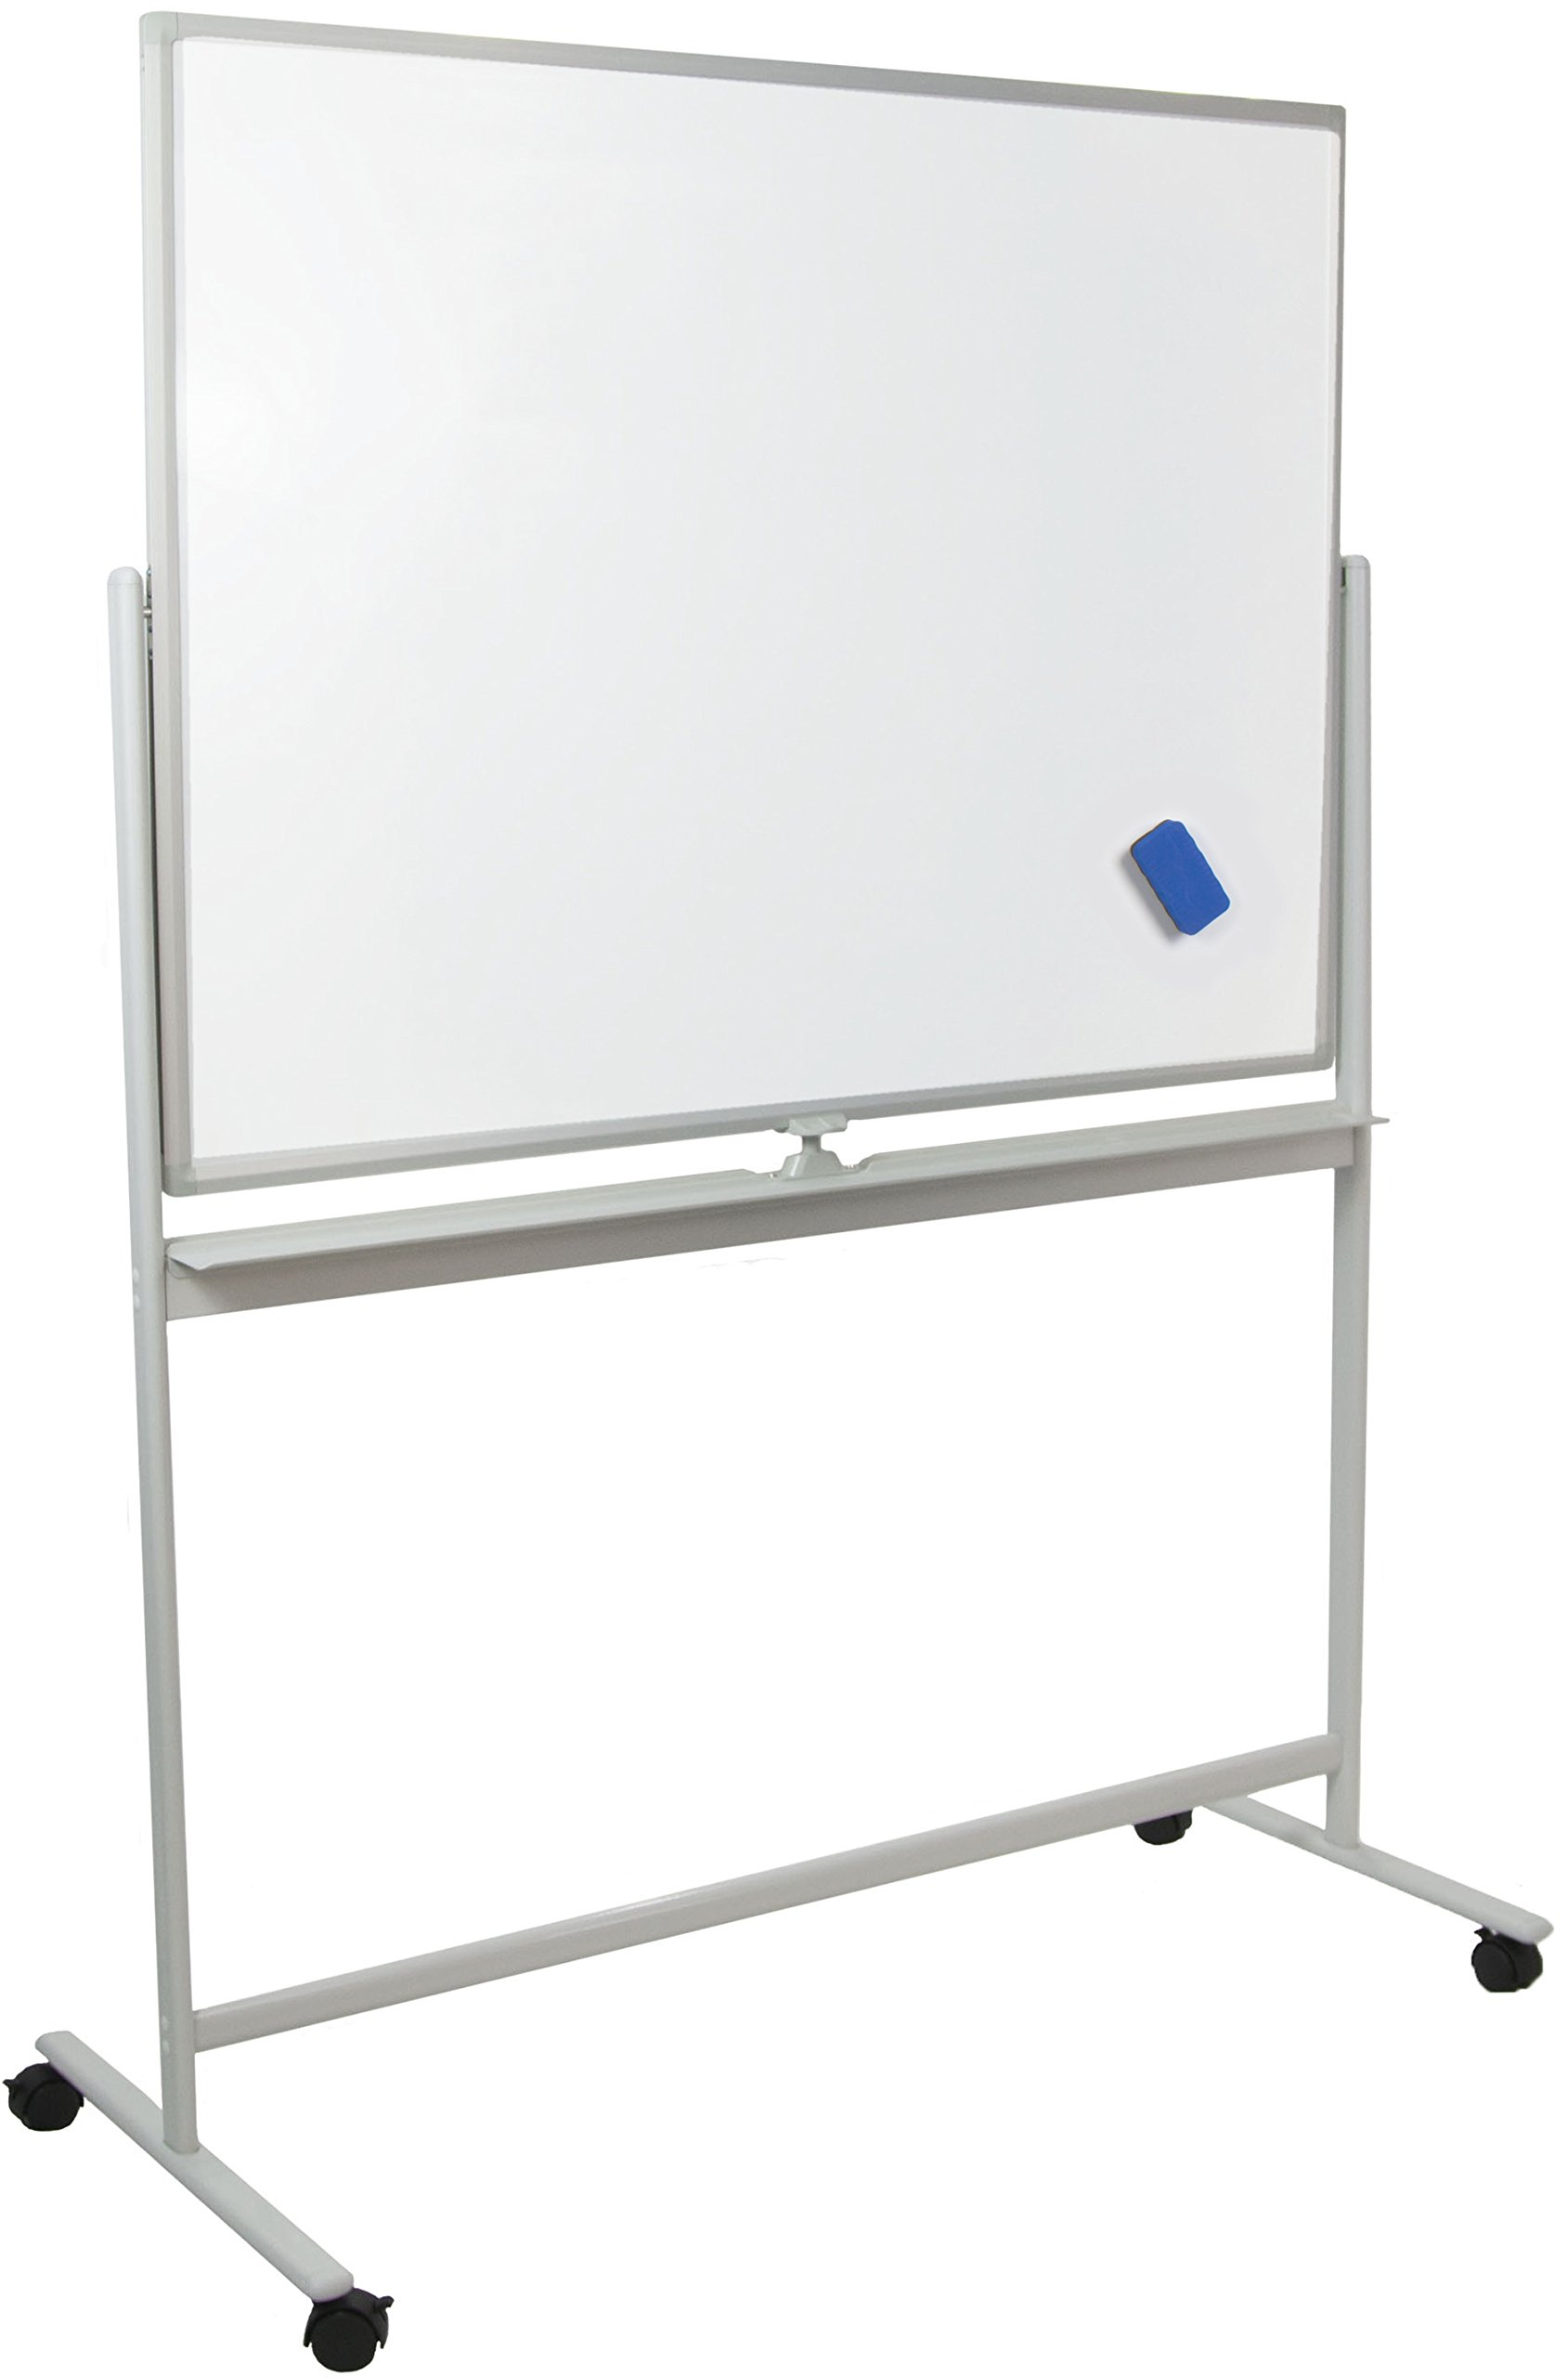 VIVO Mobile Dry Erase Board 48'' x 32'' Double Sided Magnetic Whiteboard Aluminum Frame Rolling Stand (CART-WB48S)